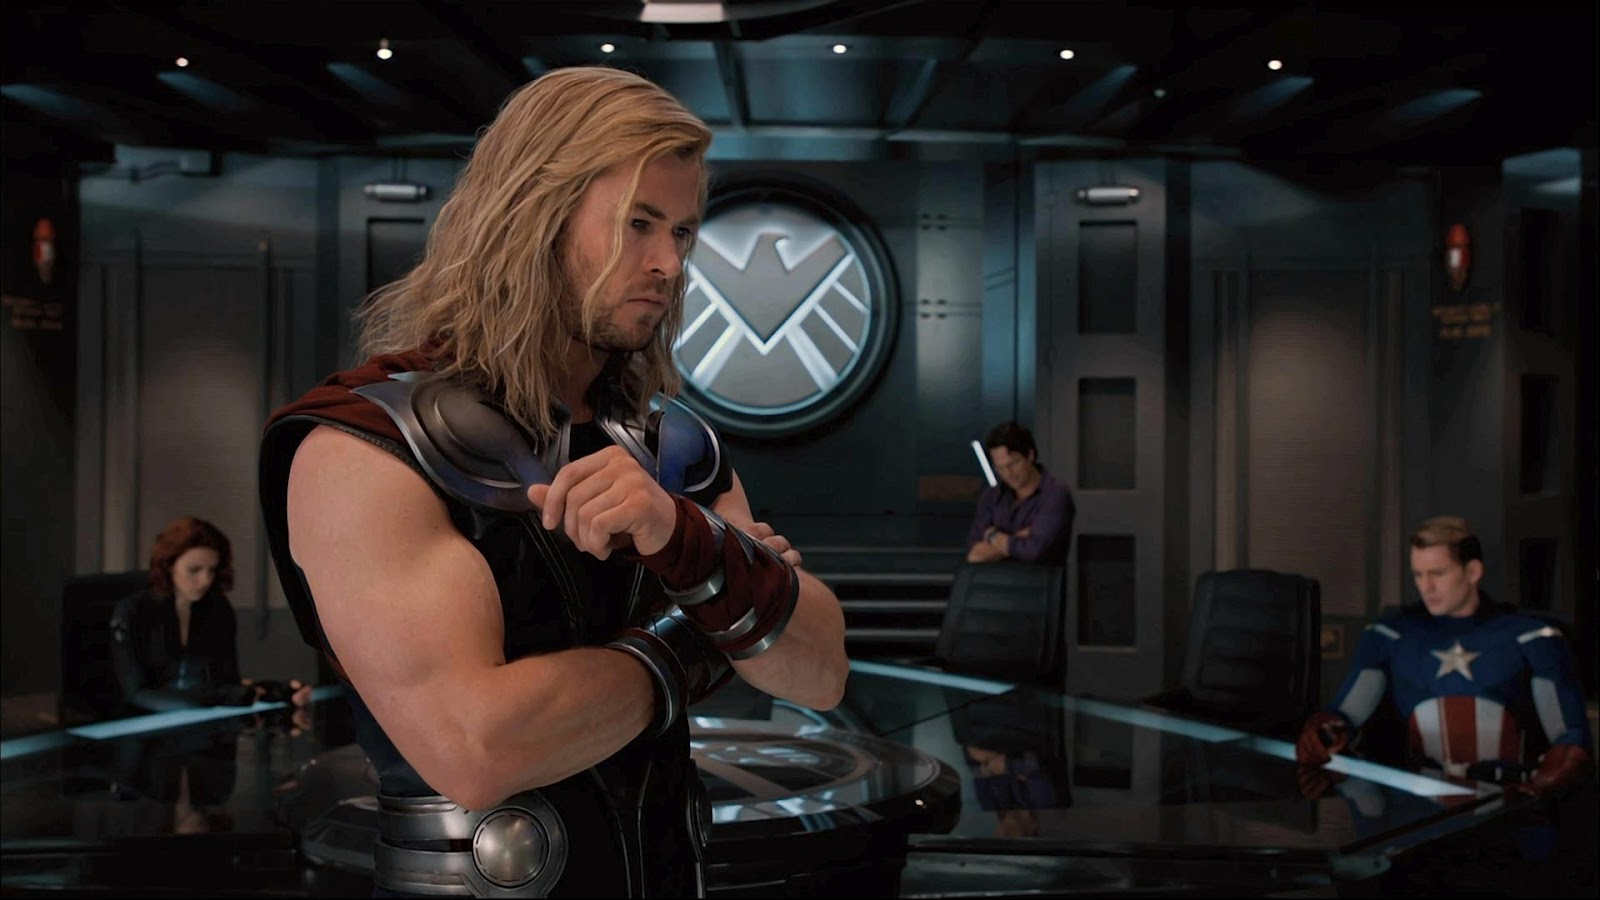 The Avengers Movie: Enter Your Movie: The Avengers Movie Stills